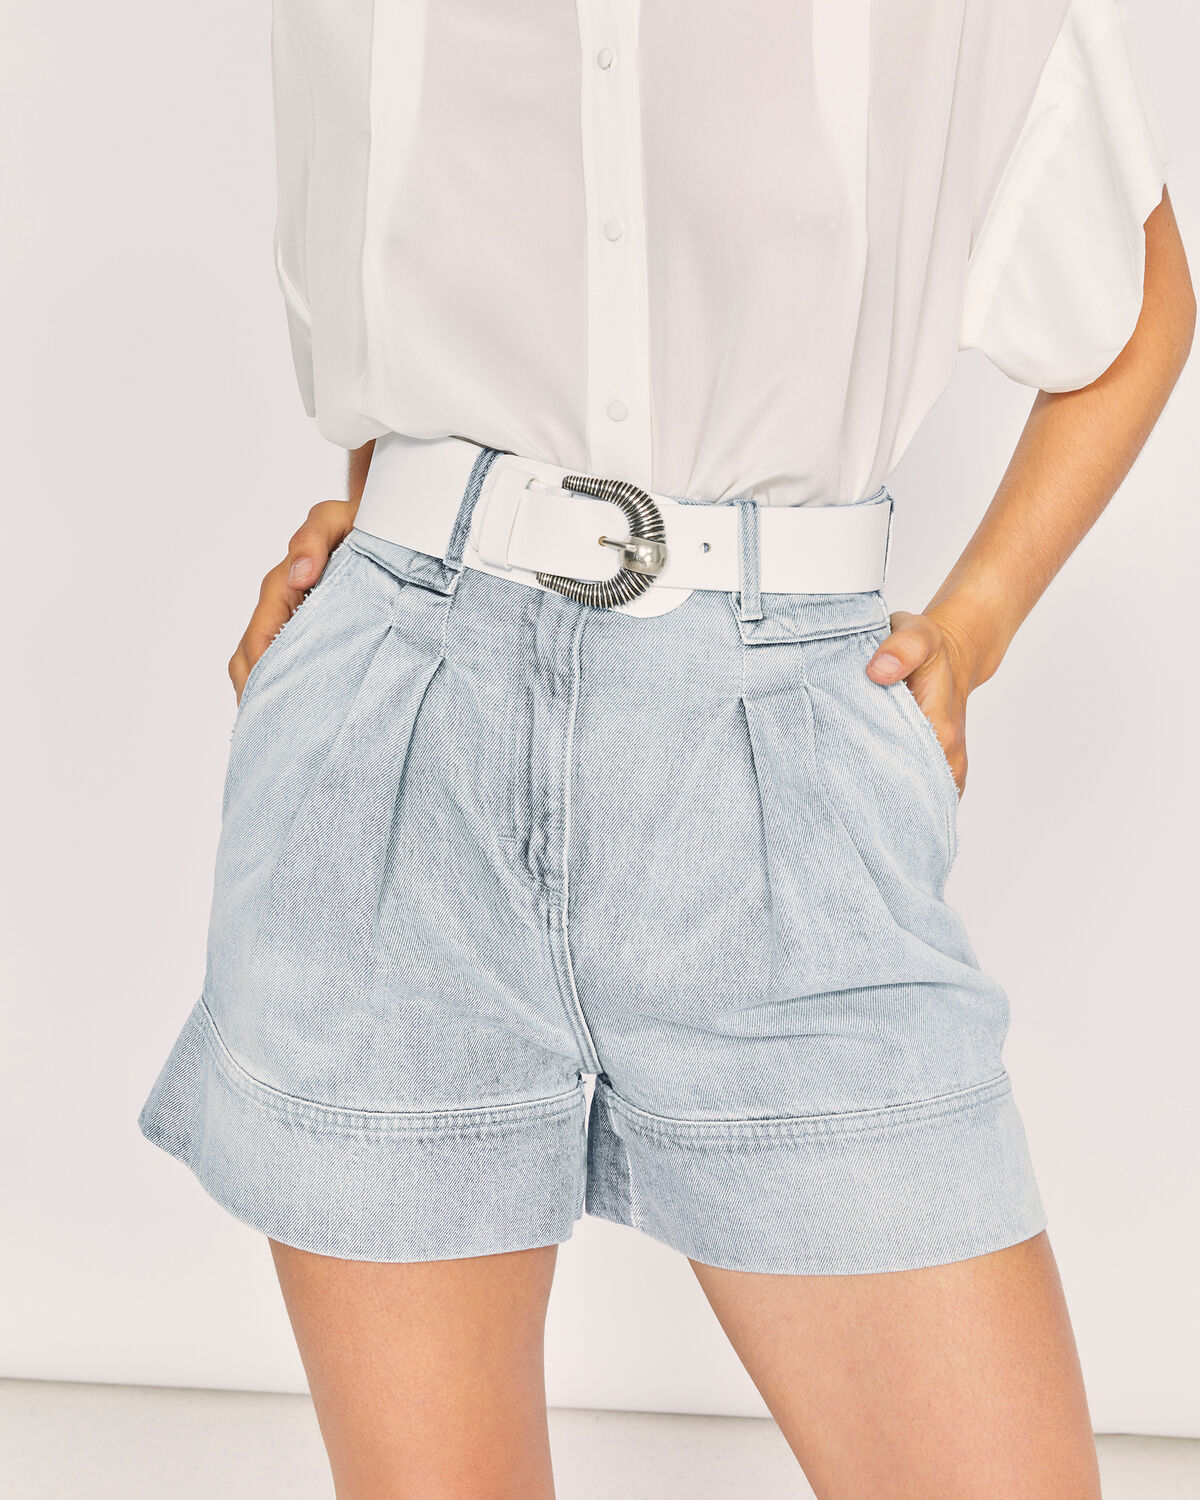 IRO - FINTRY HIGH WAIST WIDE LEG DENIM SHORTS LIGHT USED